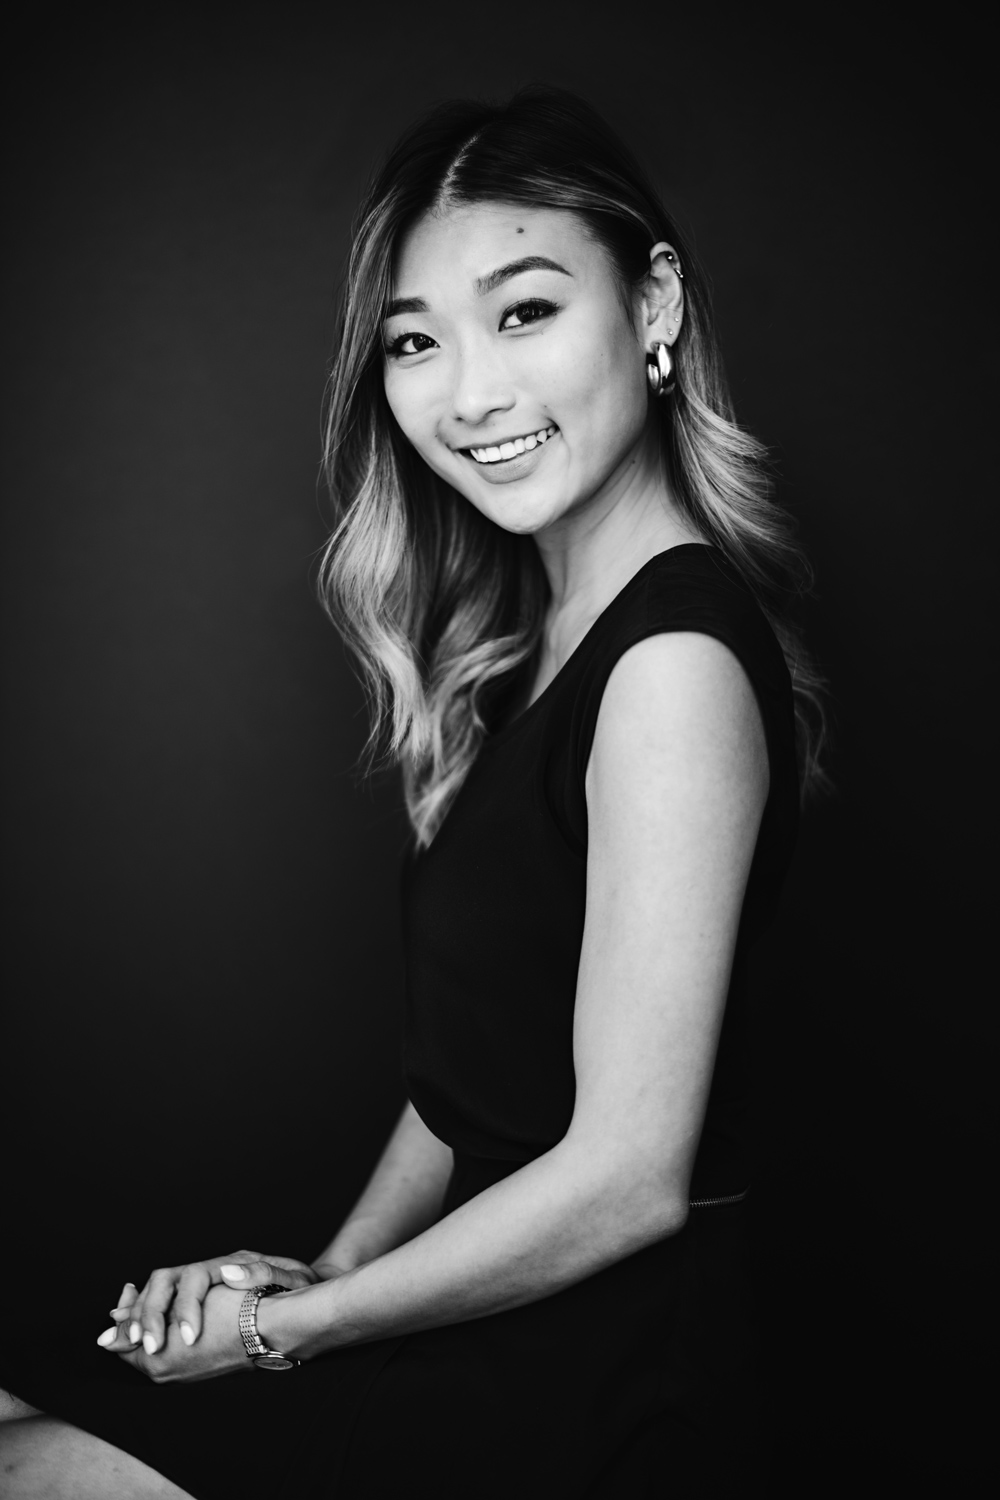 Carolyn Chen - Leads brand and product development. She has a degree in business and was previously a consultant with Bain & Co.